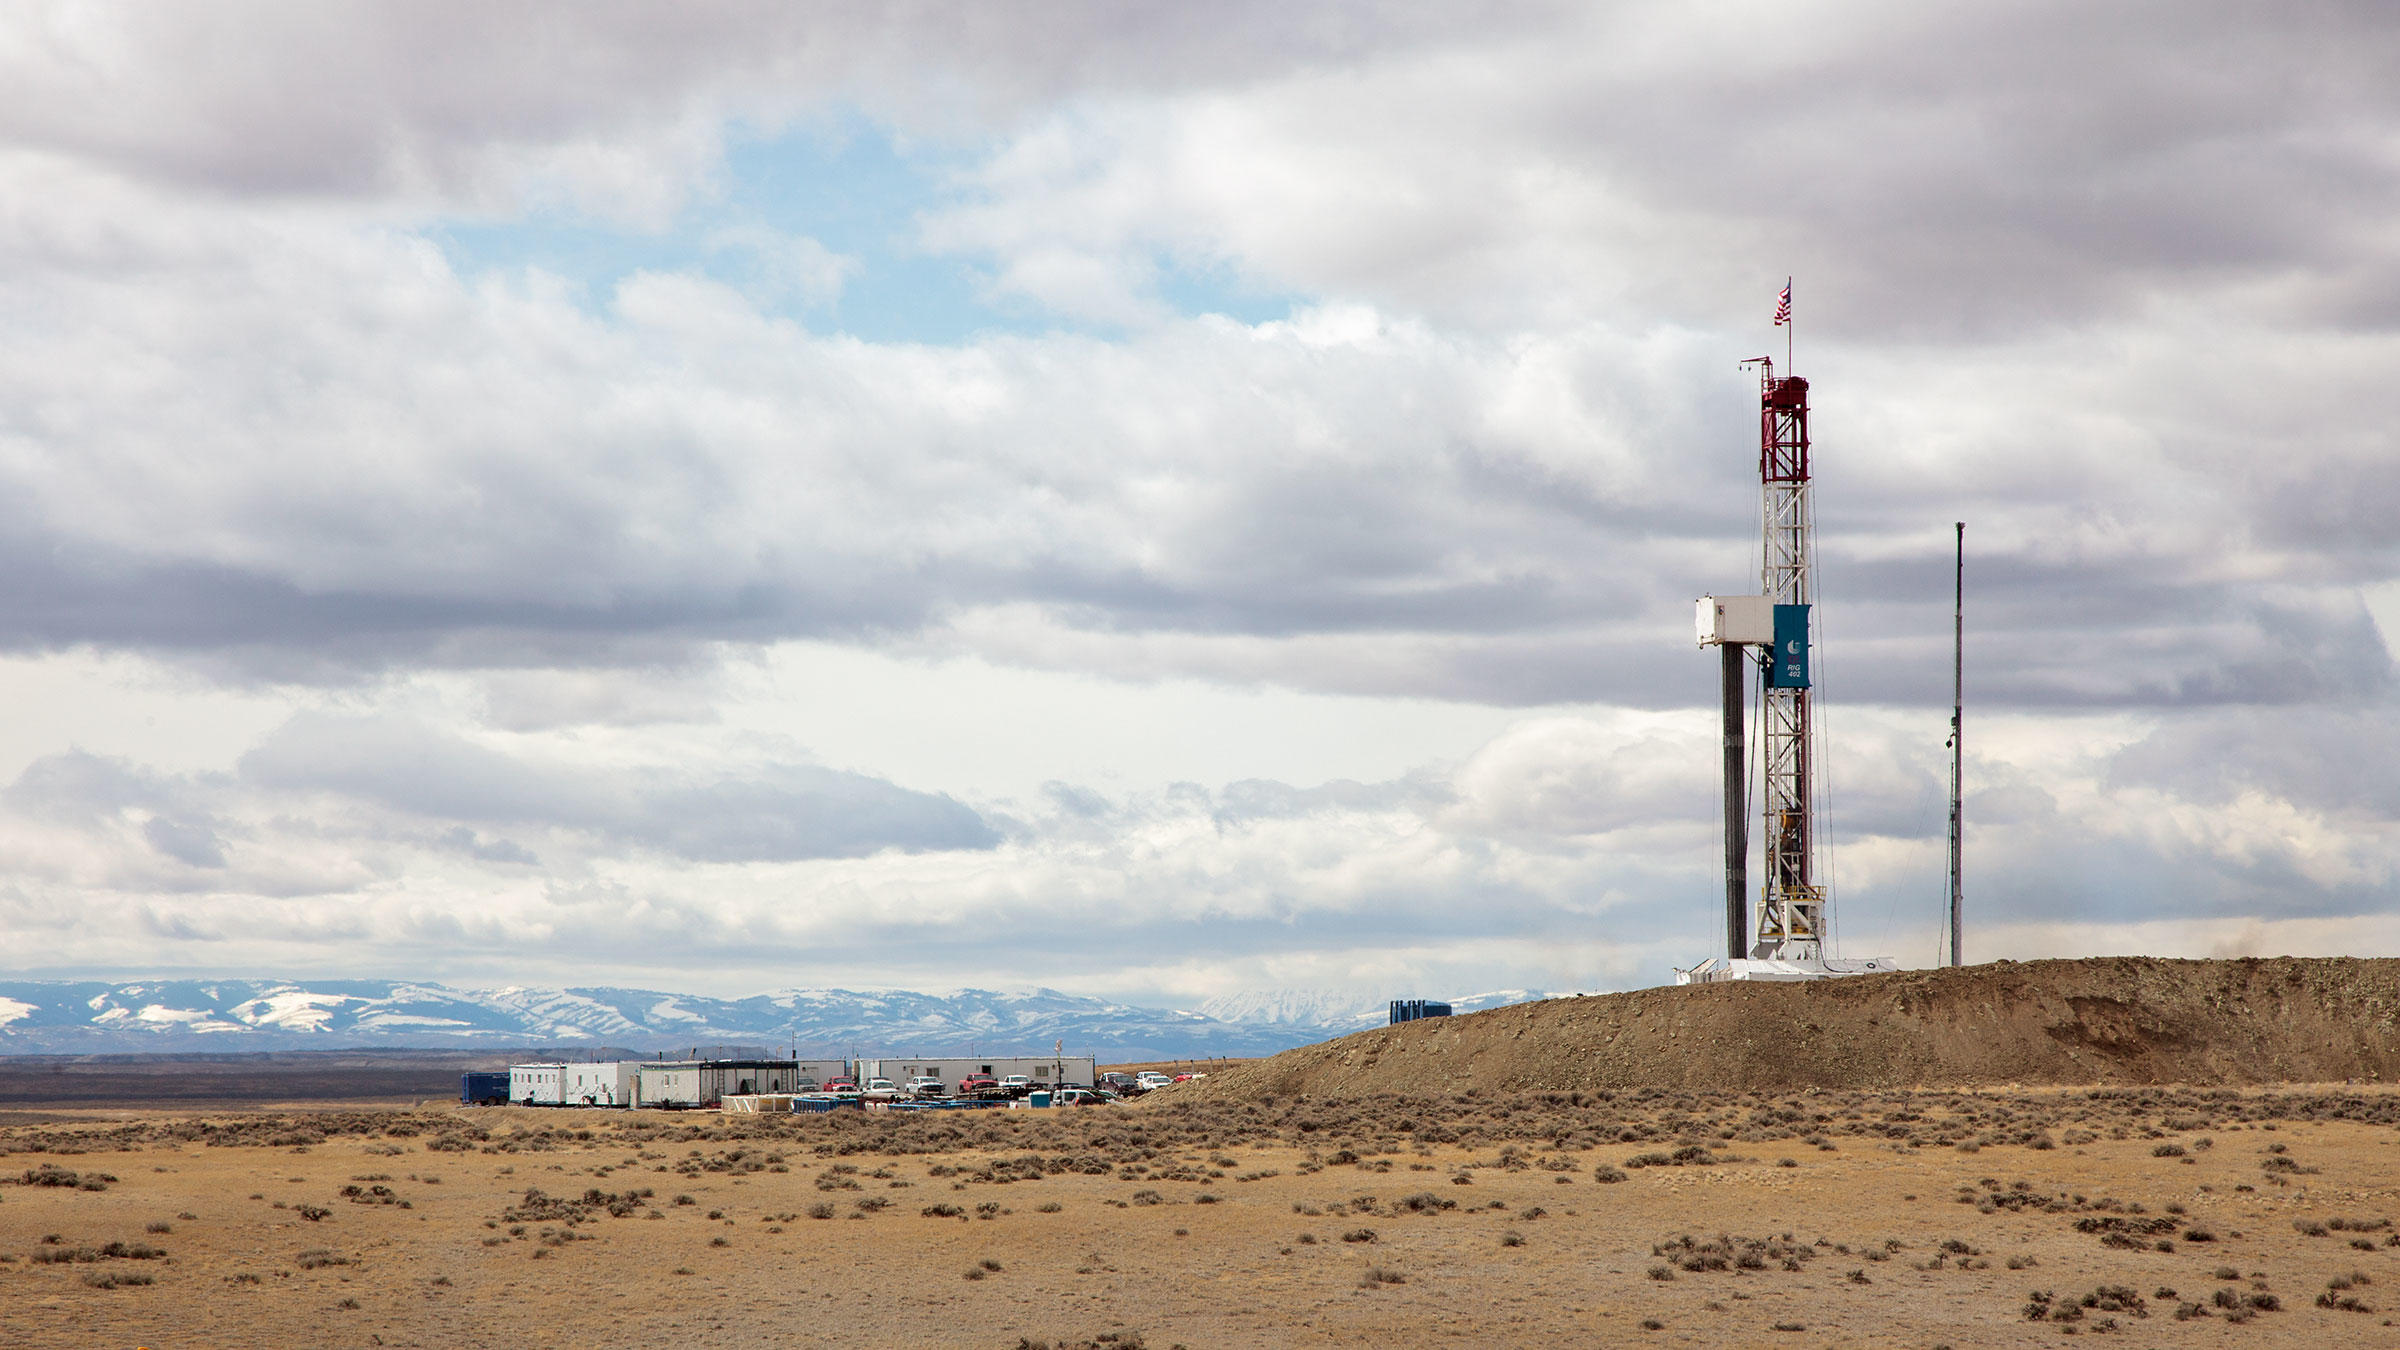 An oil drill in the heart of Wyoming's sagebrush steppe.